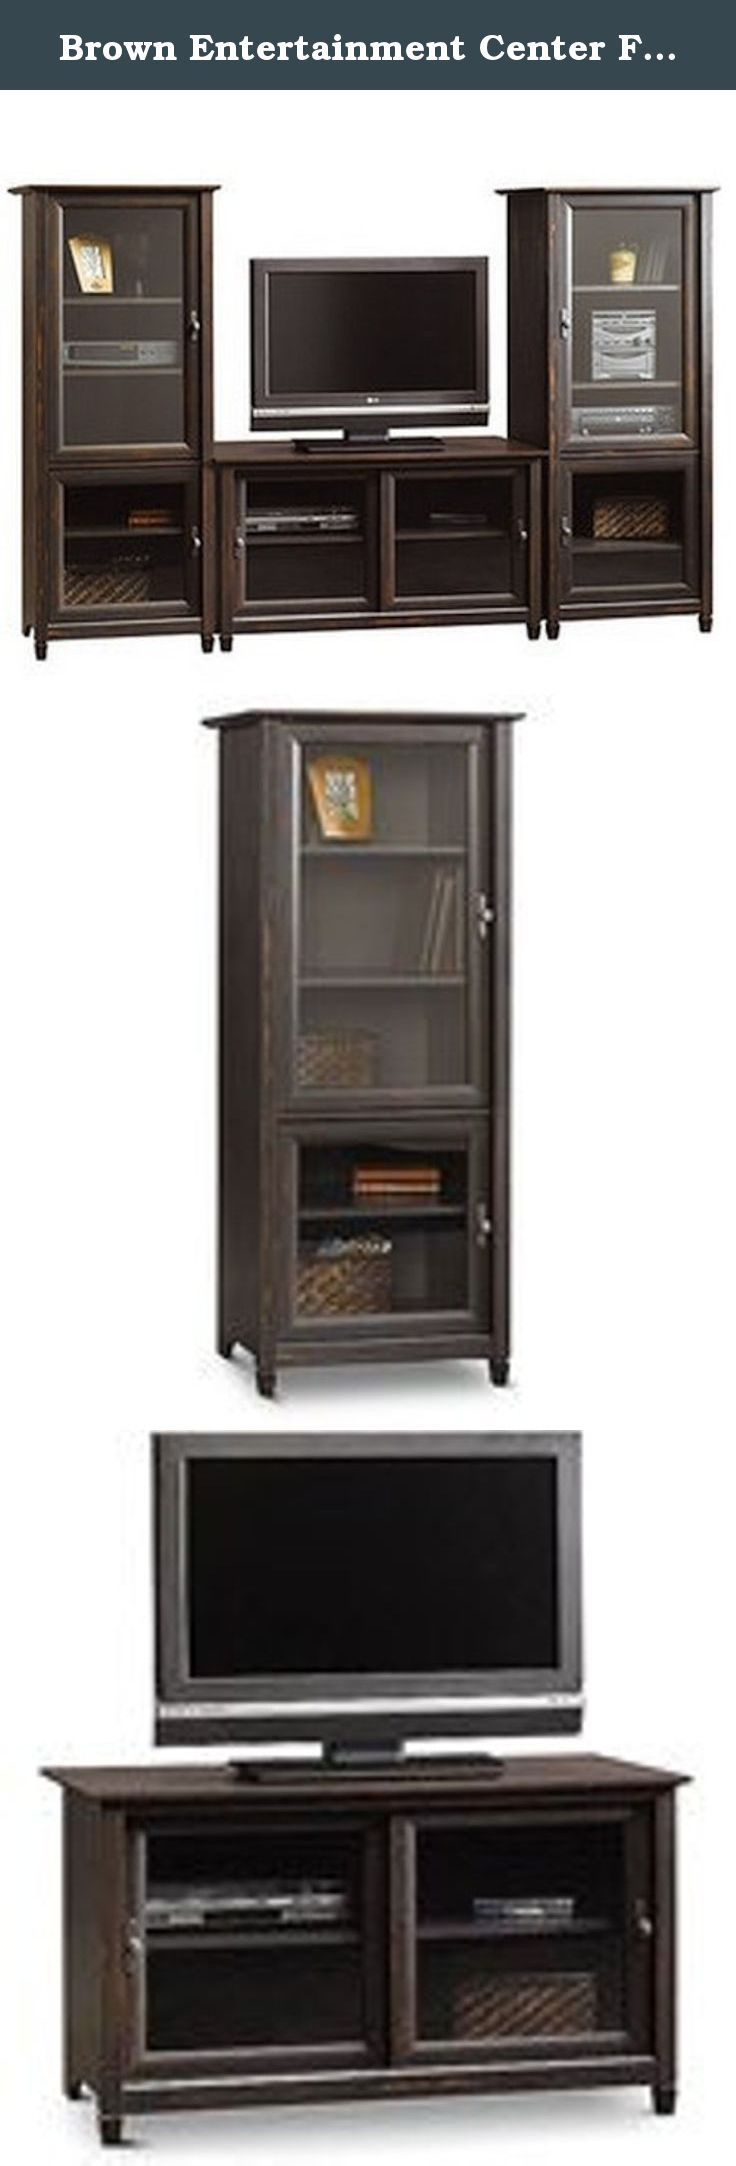 Brown Entertainment Center Flat Screen Tv Stand Matching Media Towers Storage Cabinets Vintage Antique Finish Shelves for Tv Components Glass Doors Completes the Media Center. Bundle and save. Get more and spend less when you buy the Sauder Vinegate TV Stand and 2 audio storage towers together.